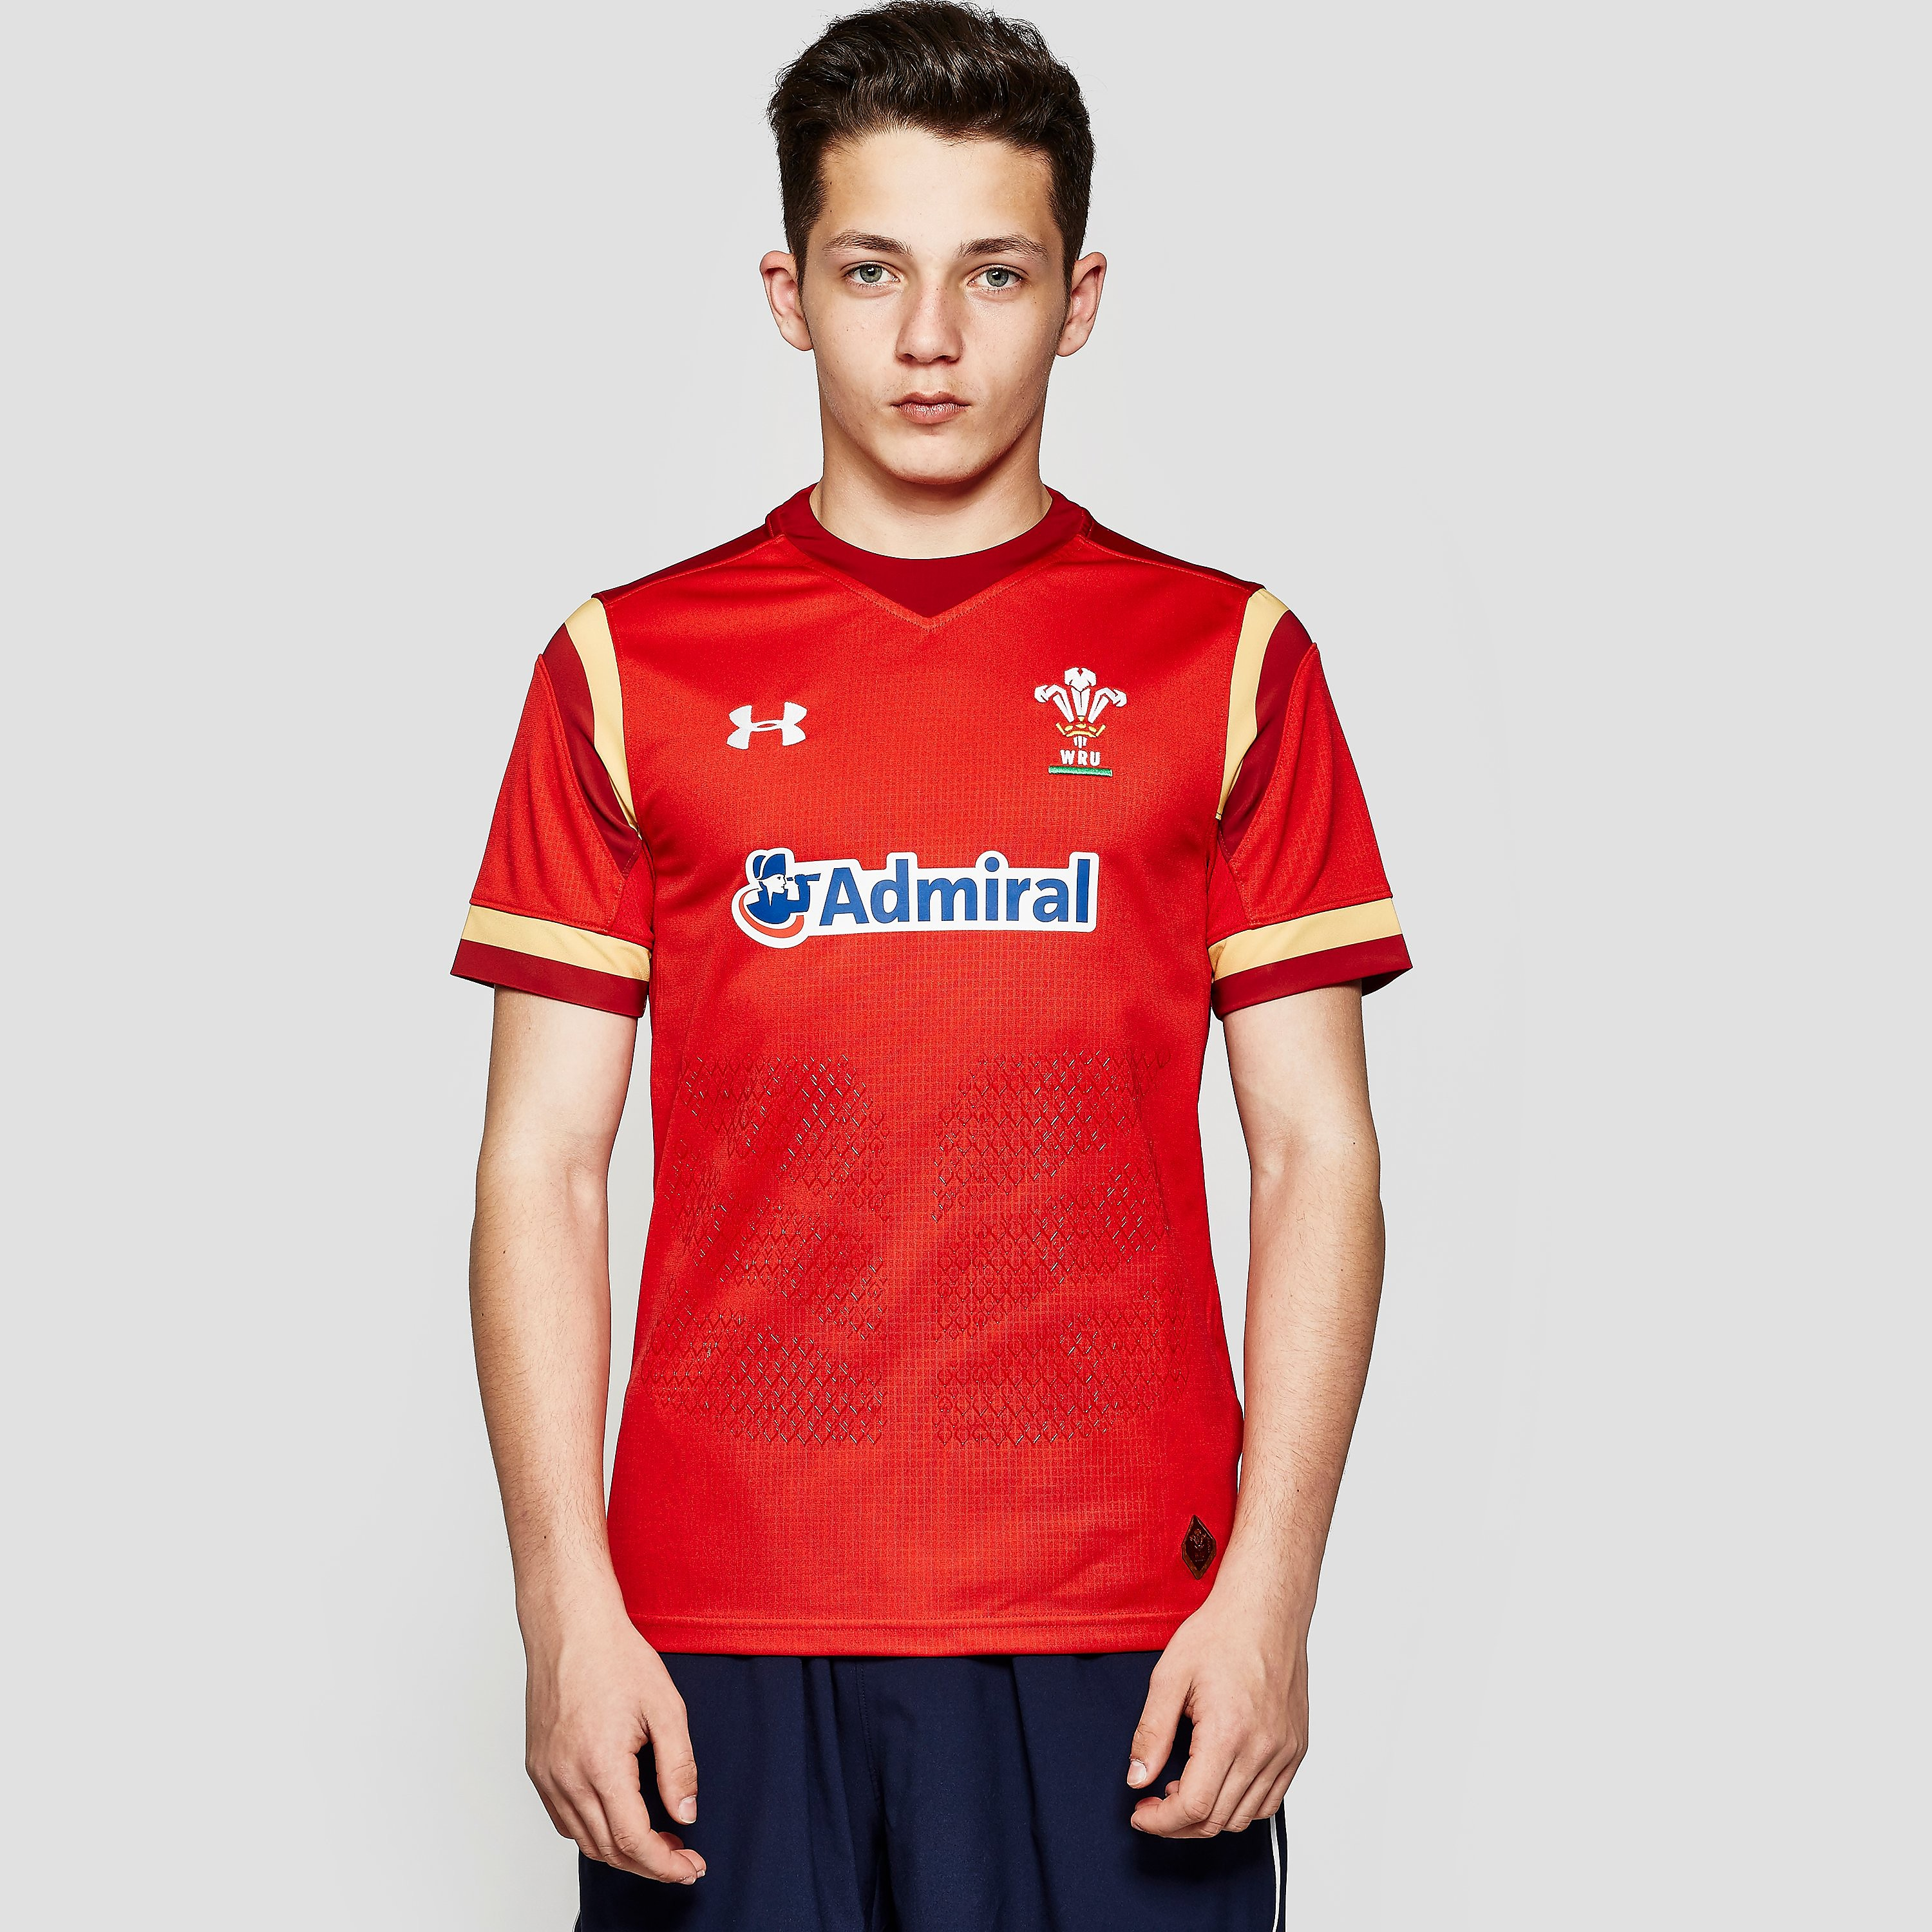 Under Armour WALES Home 2015/16 Supporters Junior Rugby Jersey